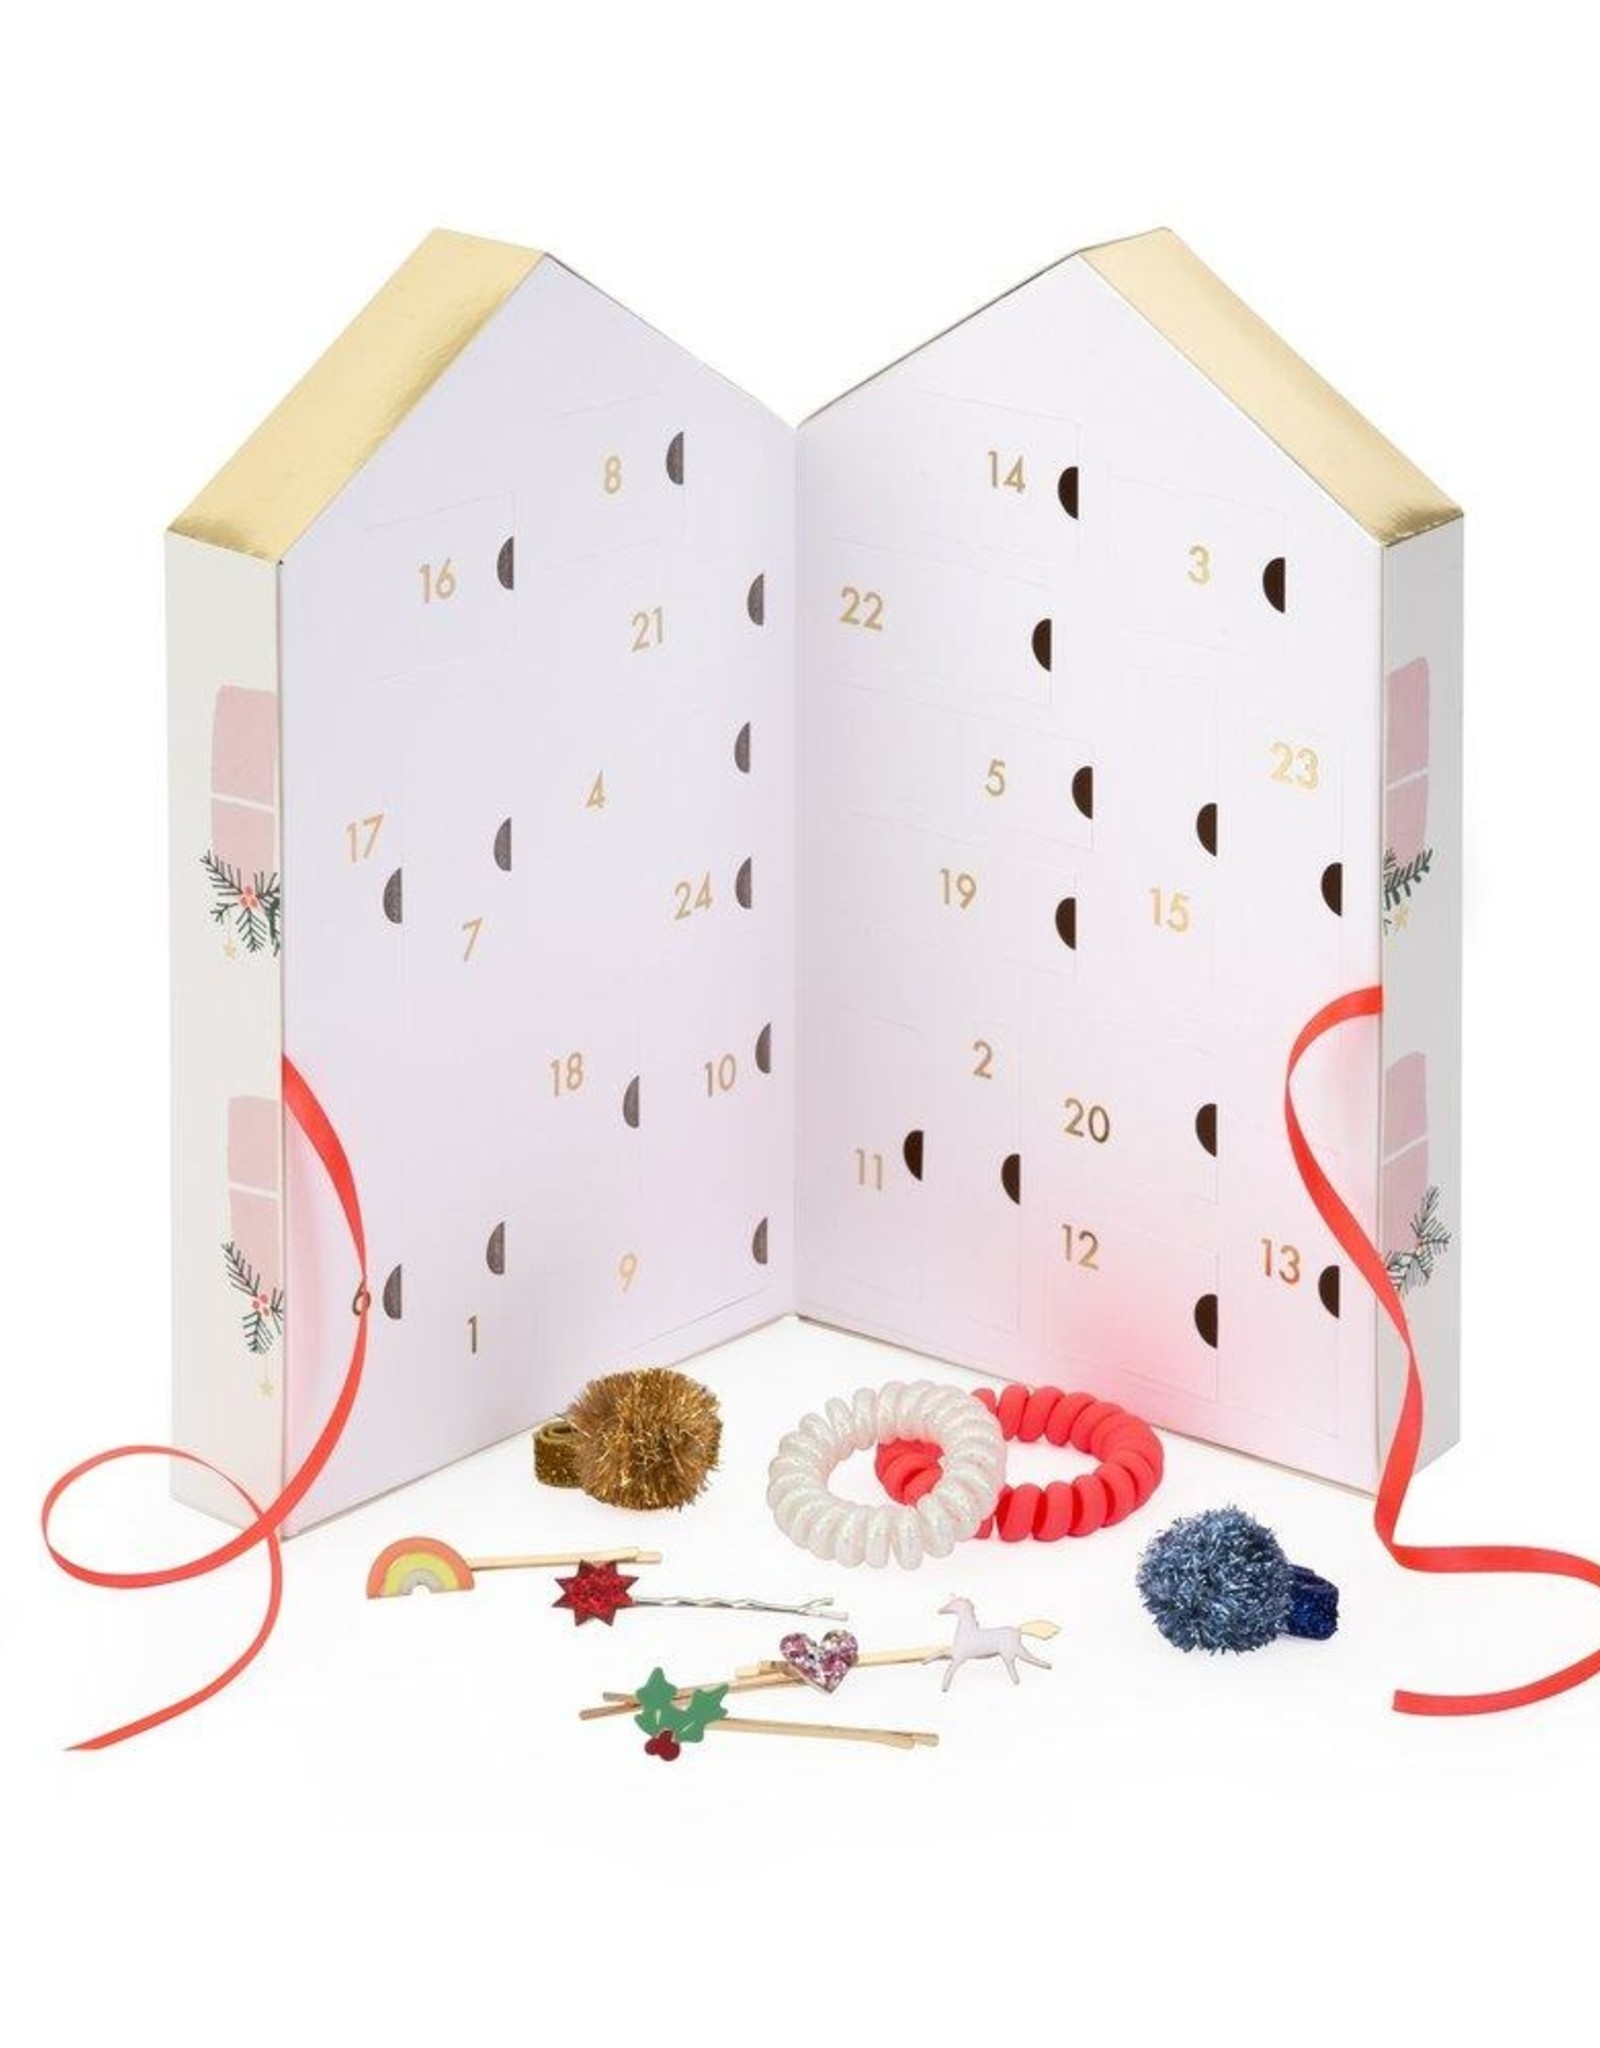 Meri Meri hair accessory advent calendar